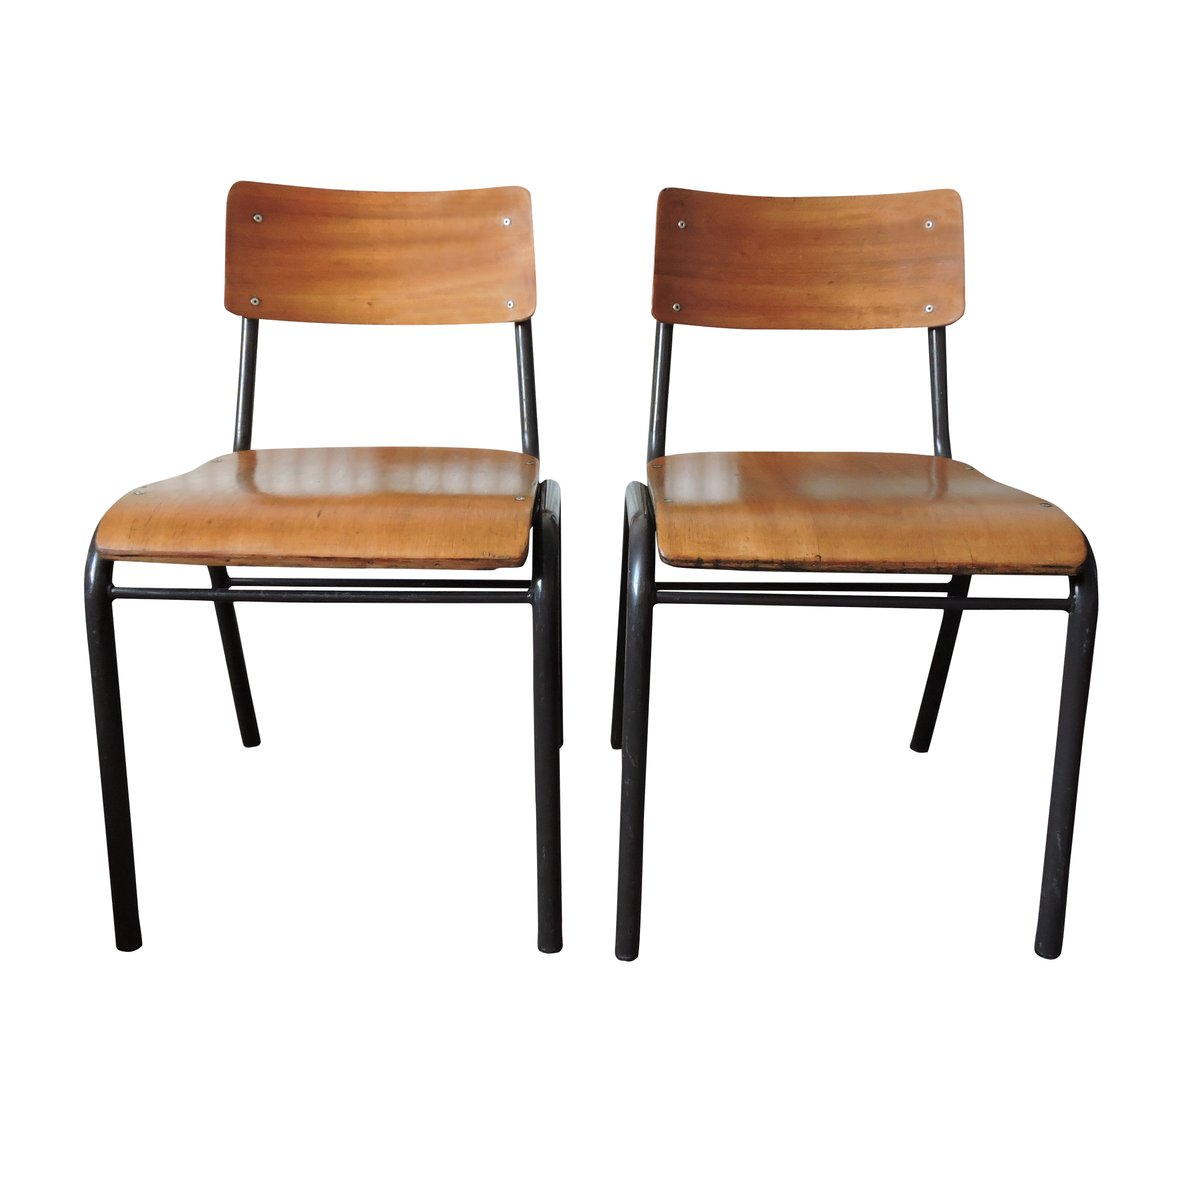 Vintage School Chairs Vintage Portuguese School Chair 1970s Set Of 2